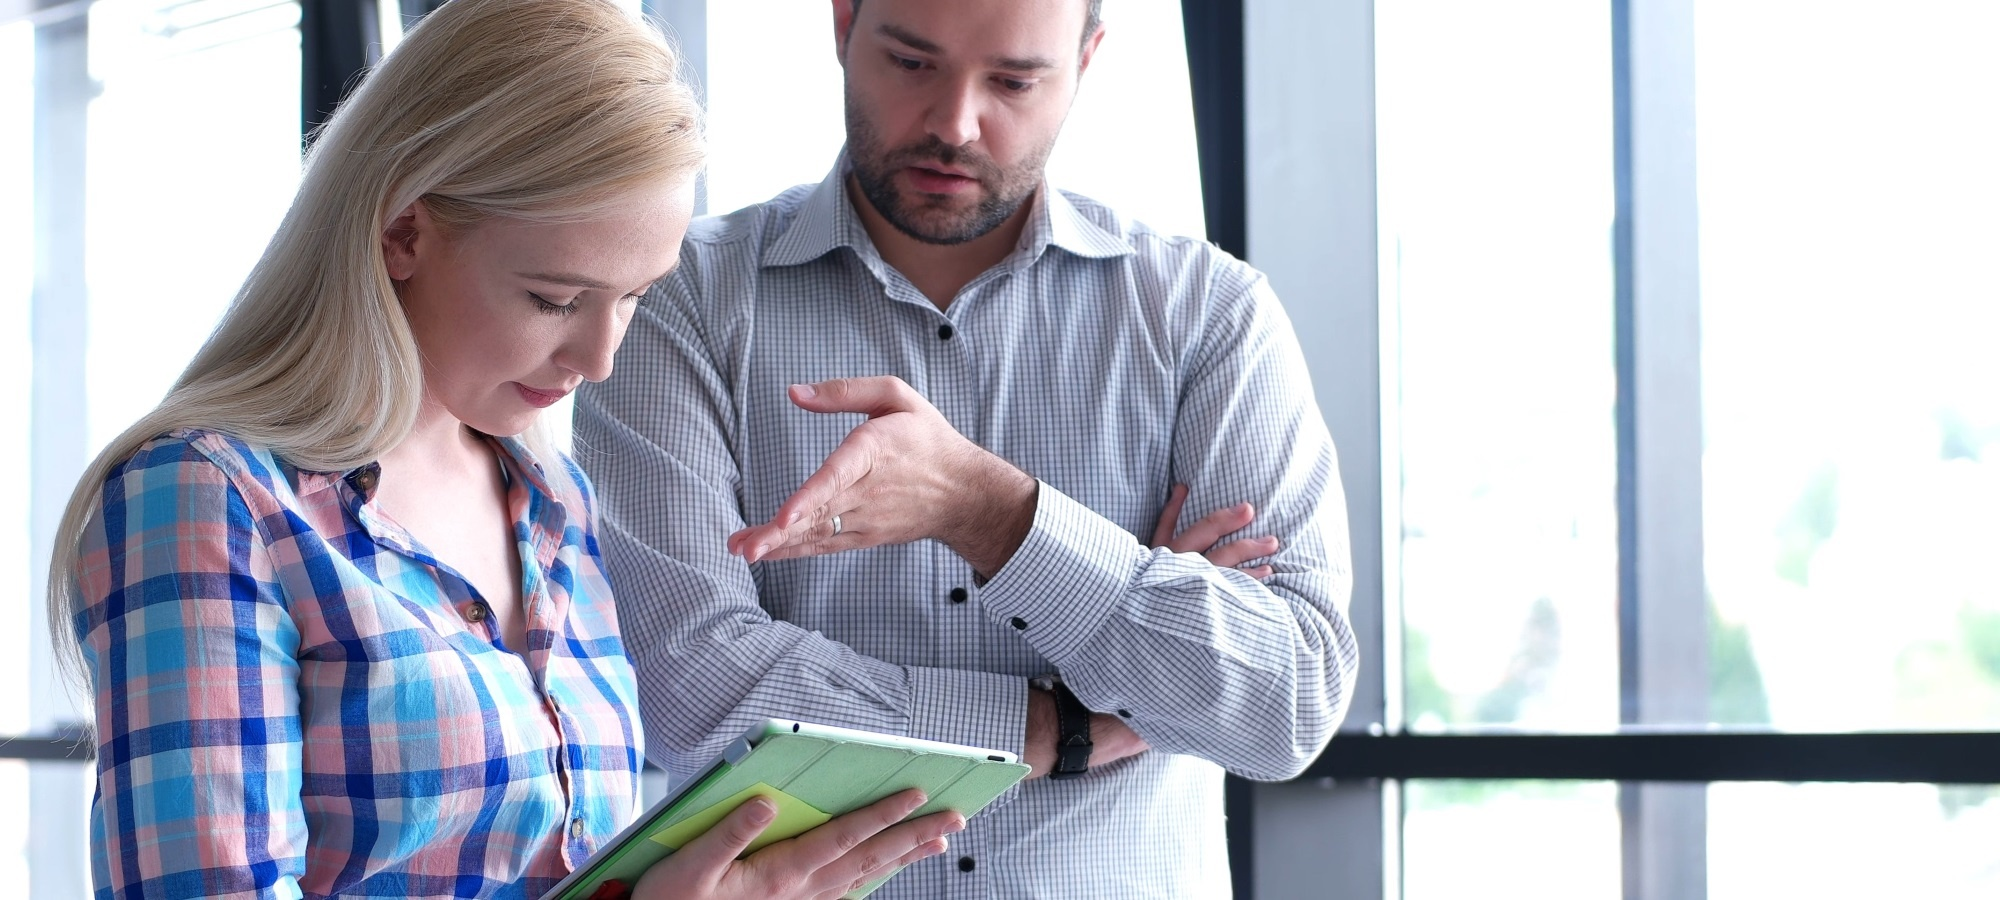 Mobile audit app brings important gains to government agency